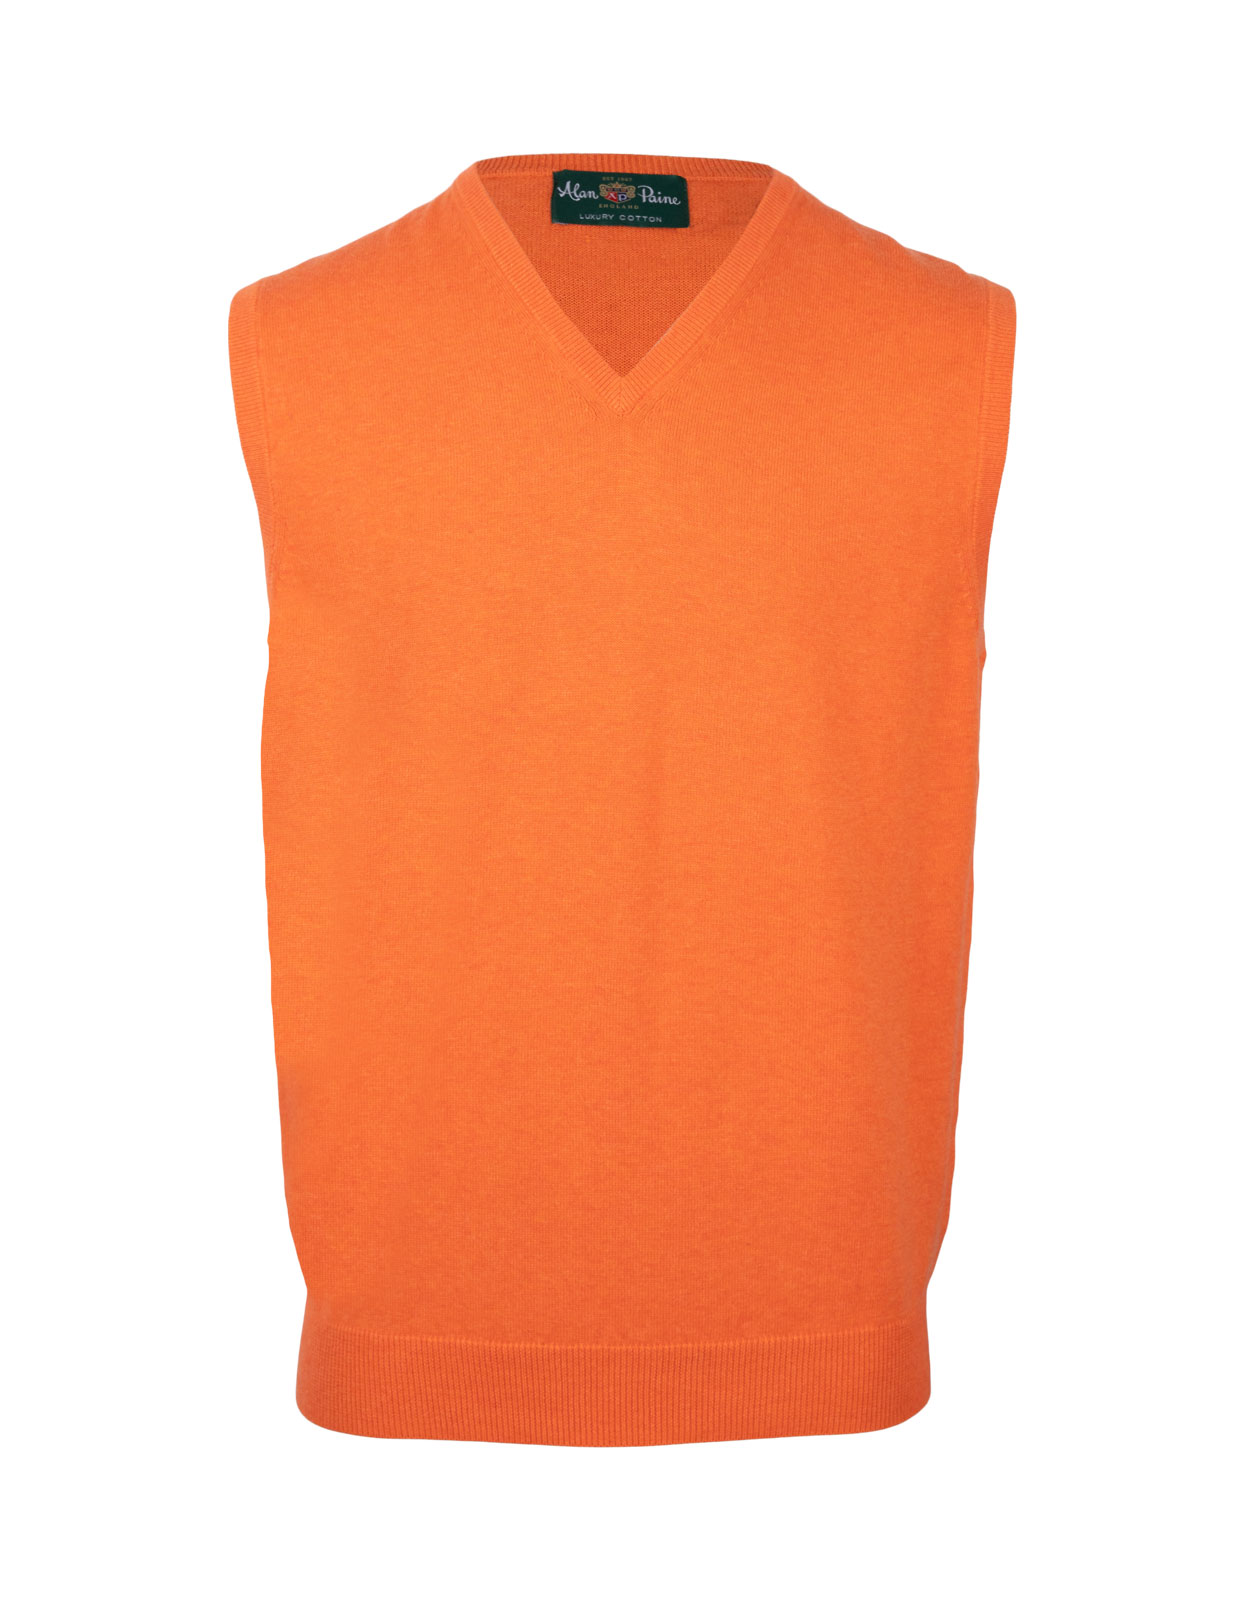 Ellerby Cotton Cashmere Vee Neck Slipover Blazing Orange